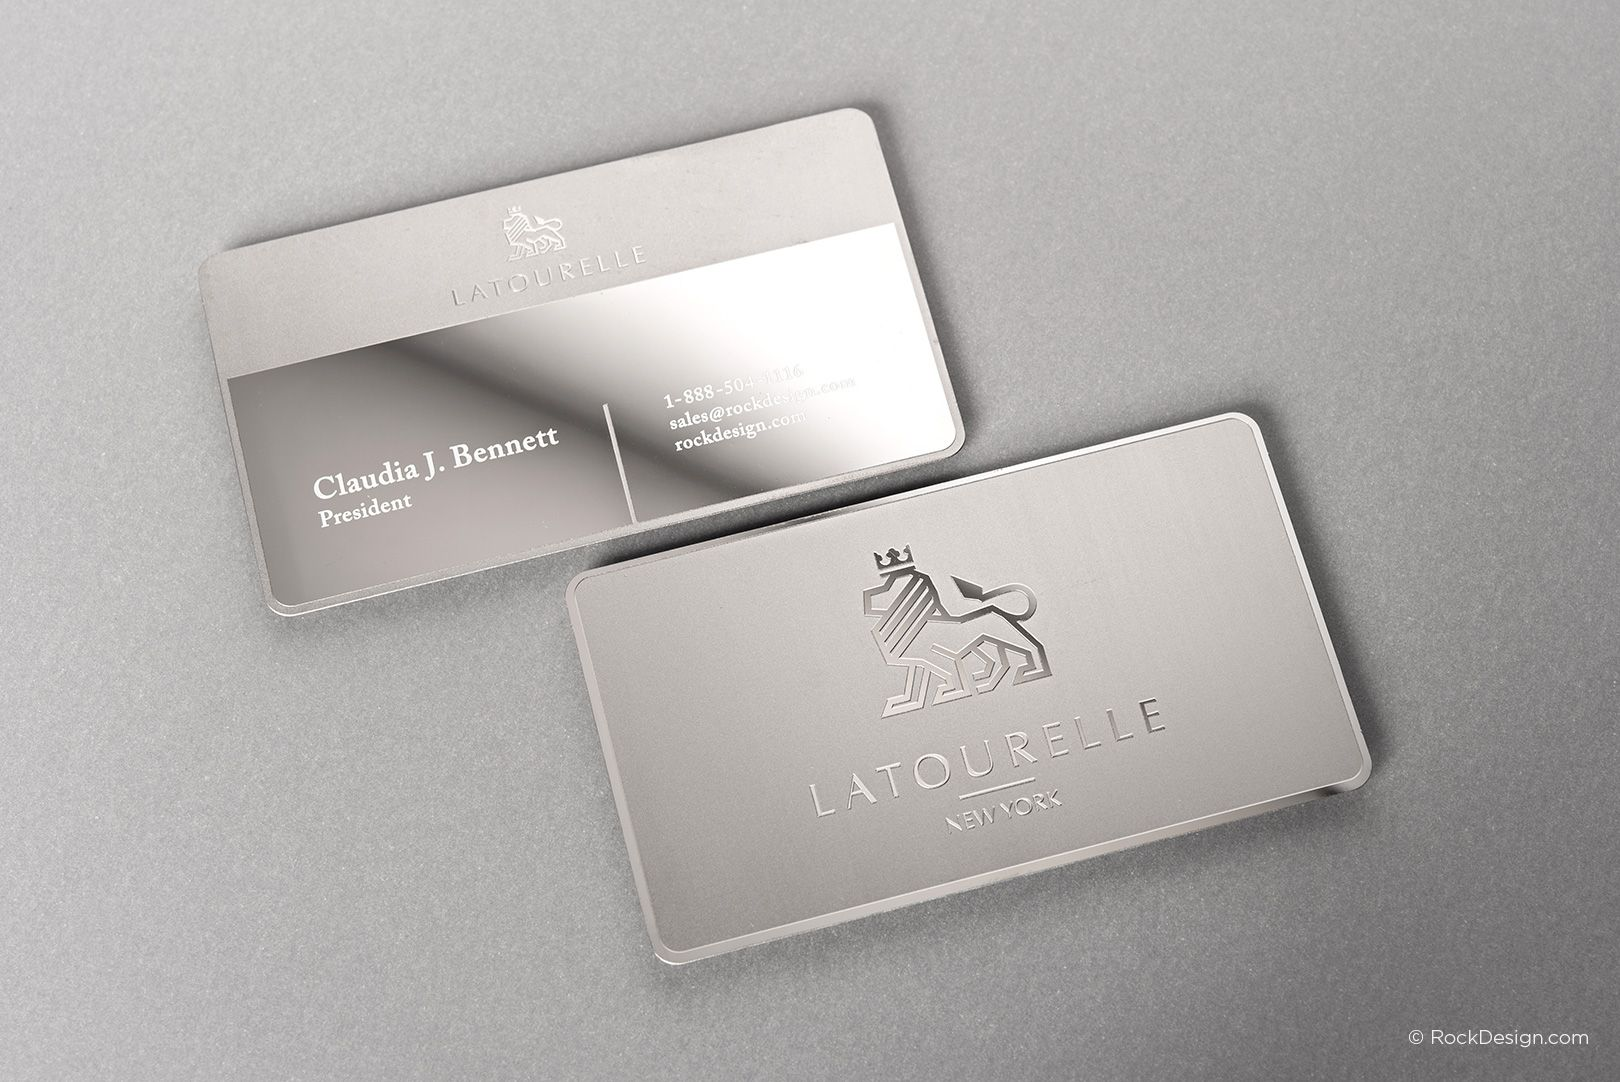 Sophisticated modern stainless steel business card with etching and sophisticated modern stainless steel business card with etching and mirror finish latourelle rockdesign luxury business card printing reheart Images